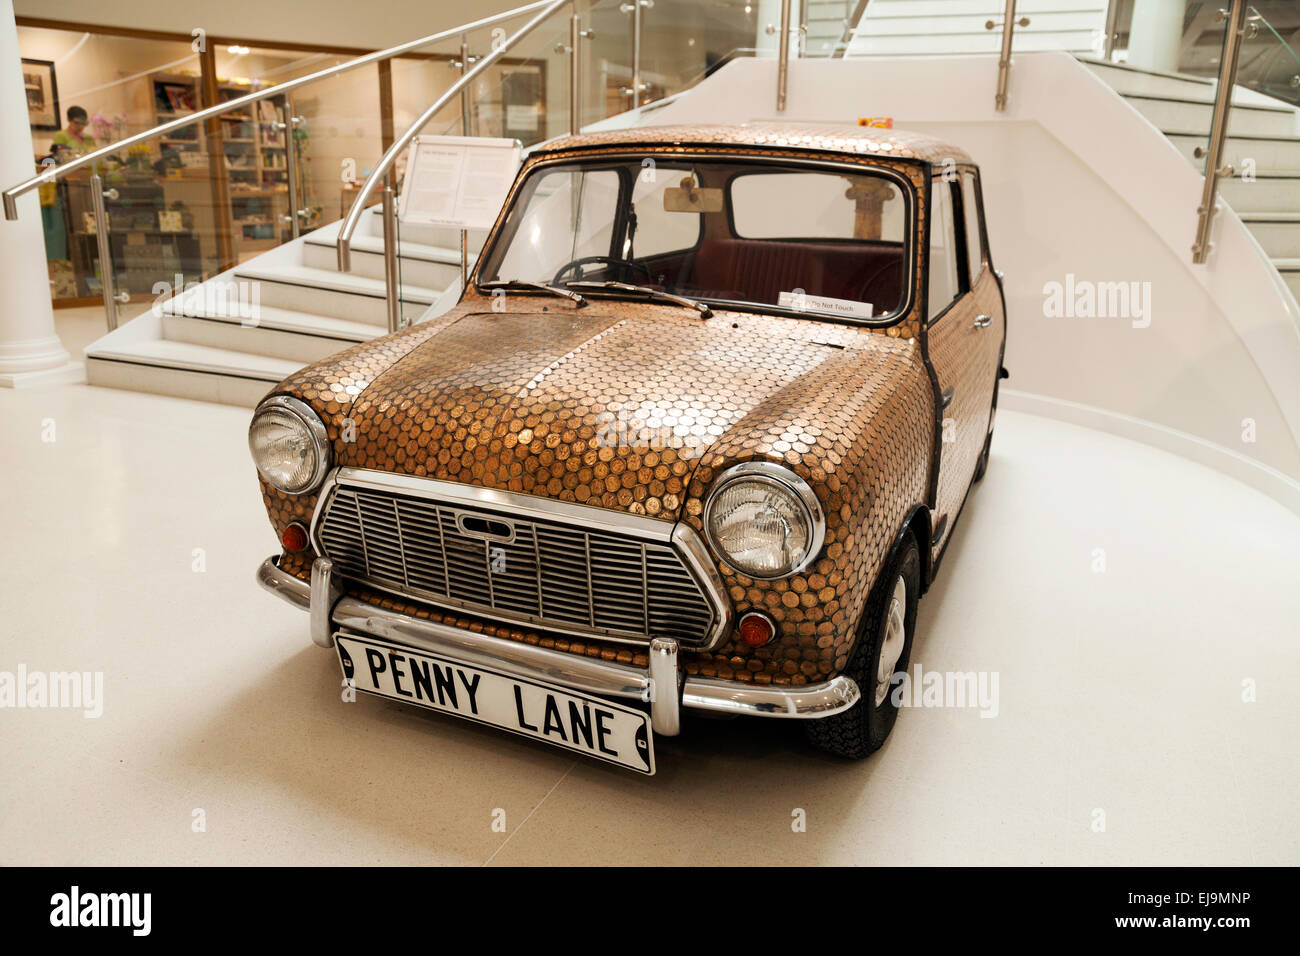 ' Penny Mini ' car, covered with old pennies, possibly linked to the Beatles song ' Penny Lane', - Stock Image